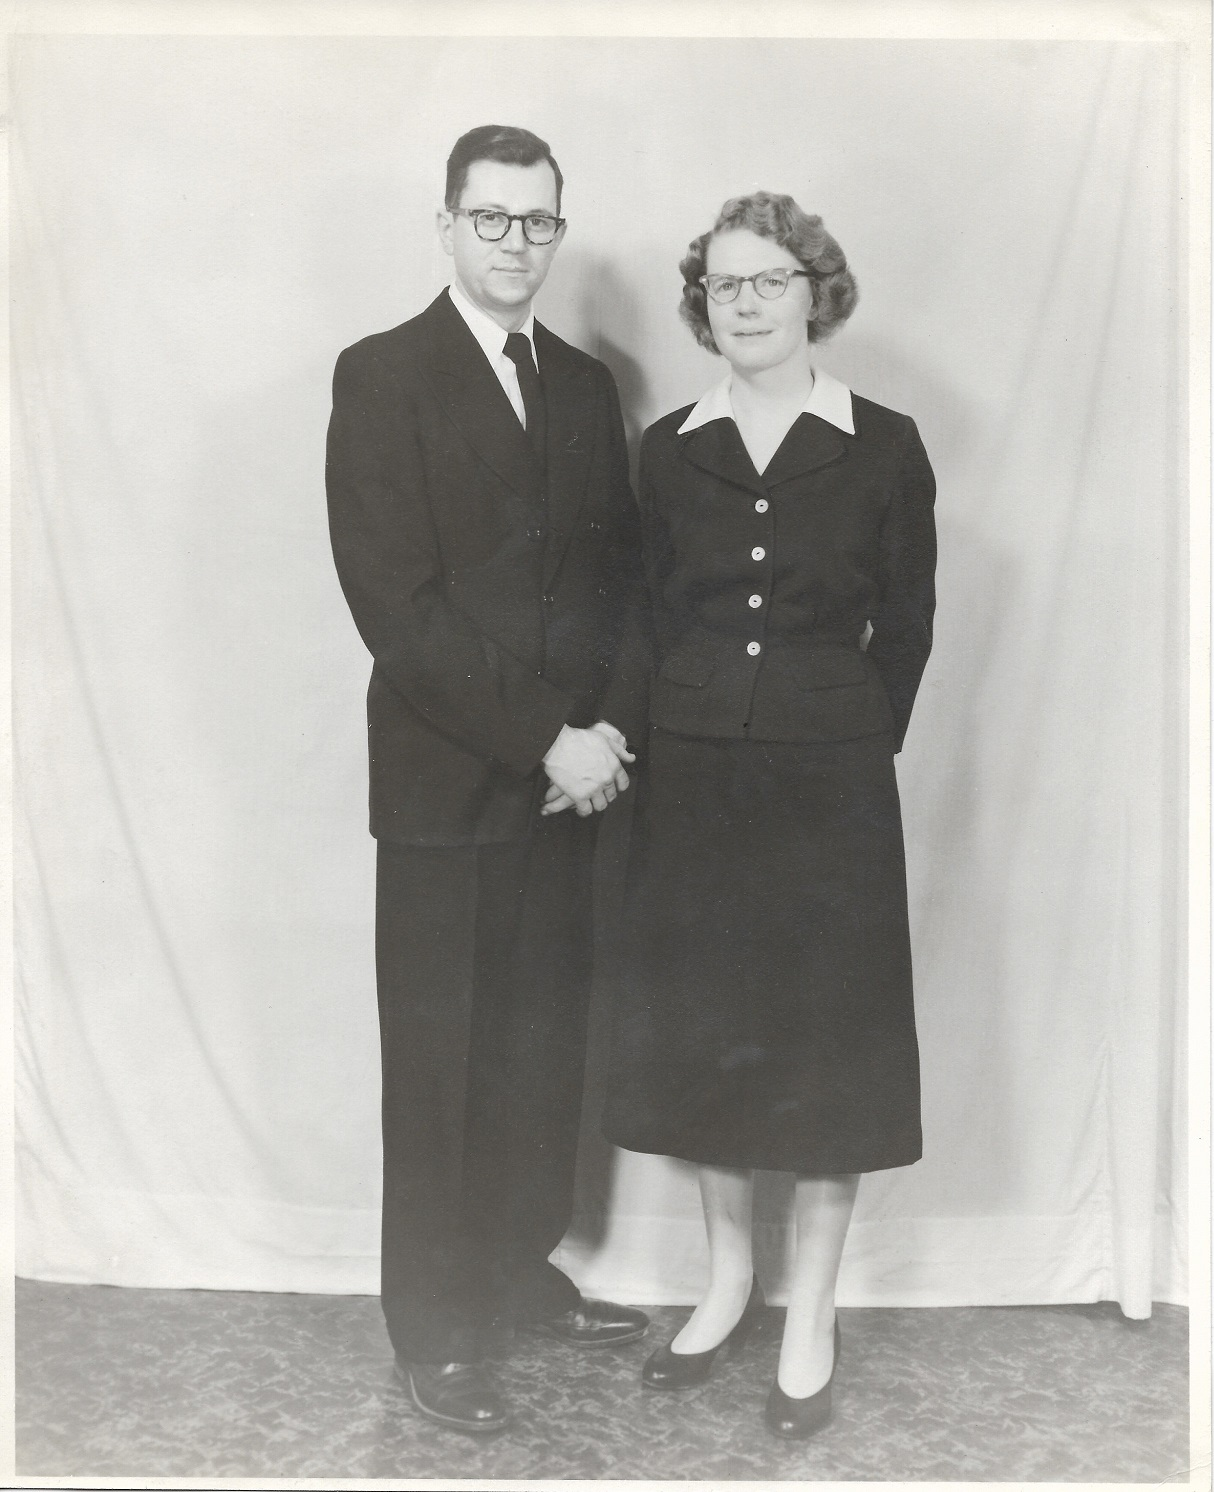 This photo depicts my paternal grandparents at their wedding reception in 1958.